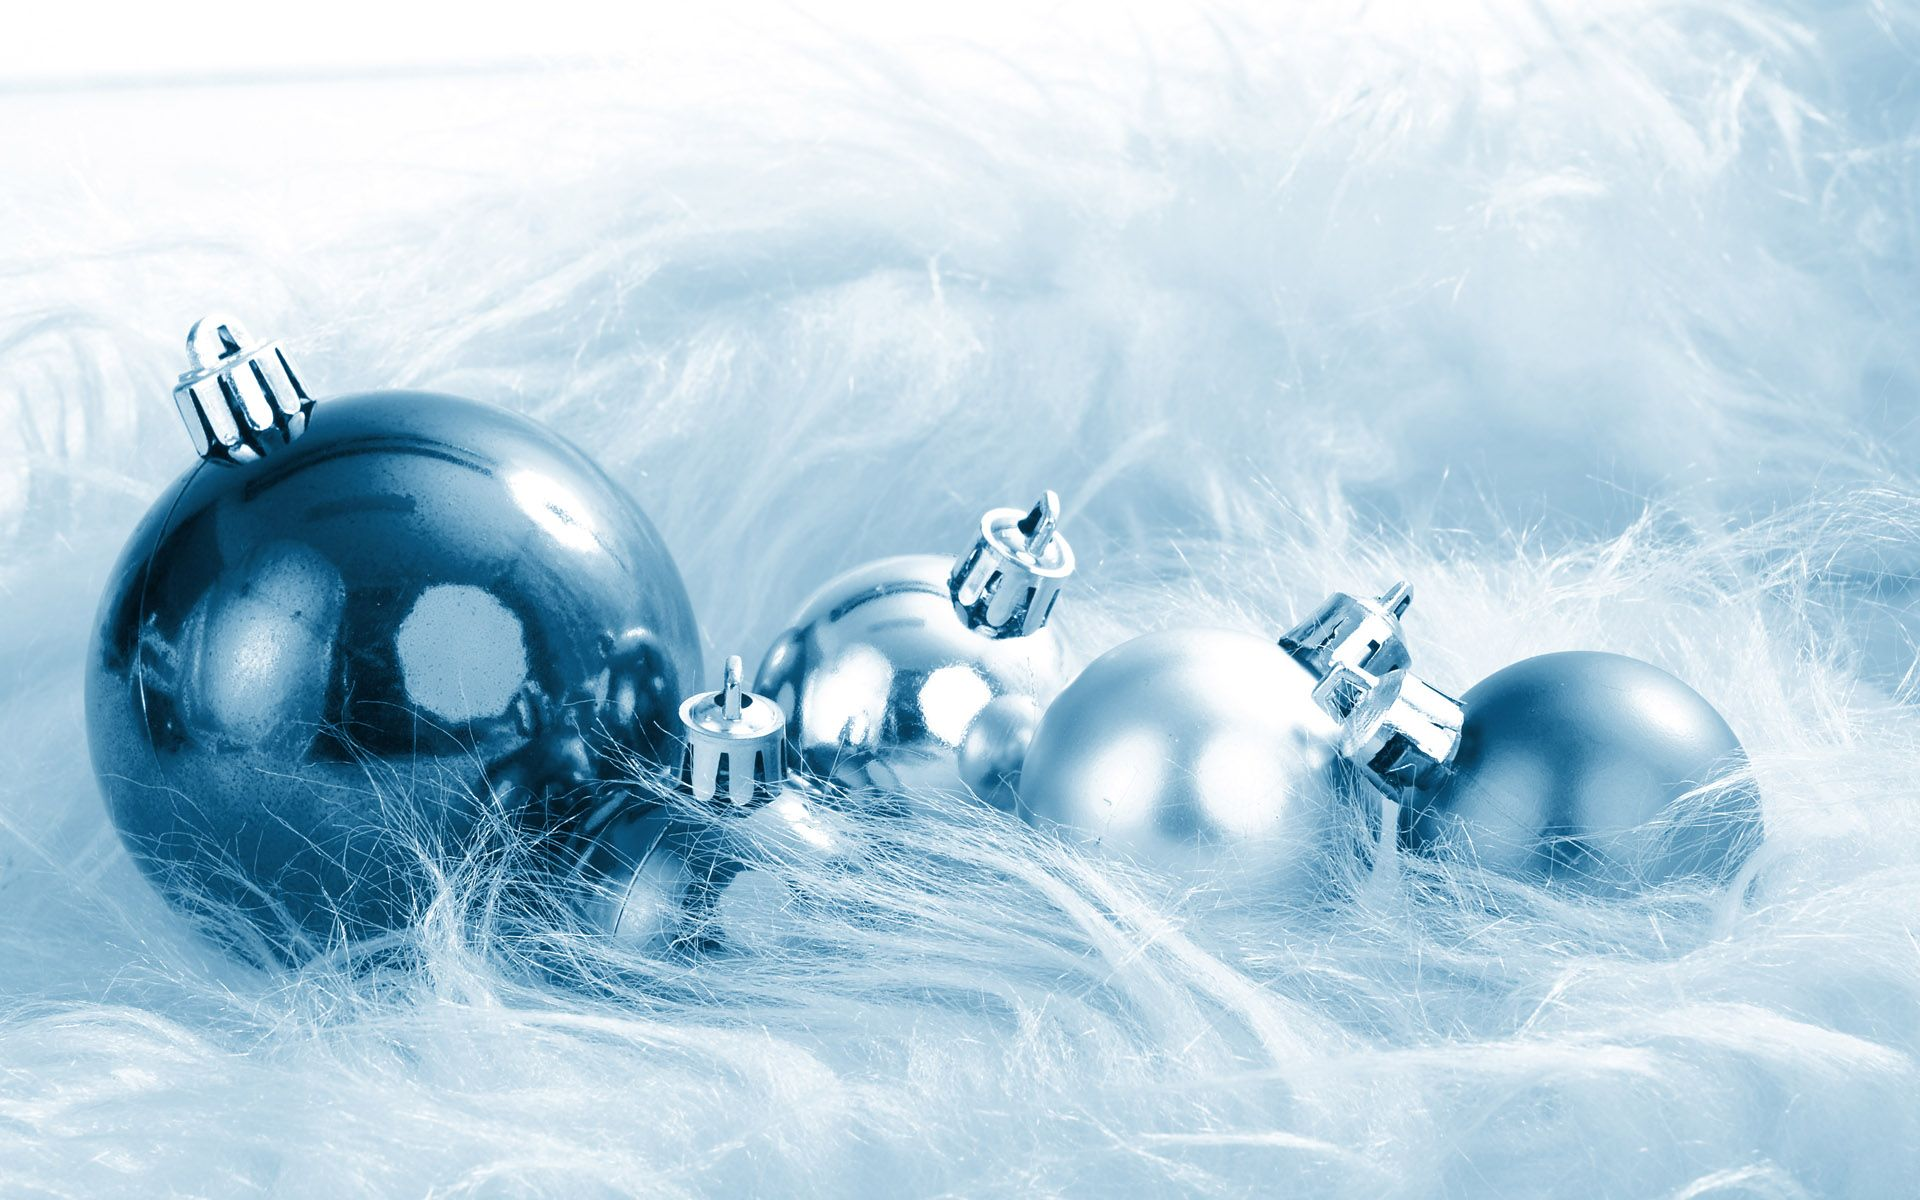 Blue And White Christmas Decorations Bing Images Blue Christmas White Christmas Ornaments White Christmas Decor